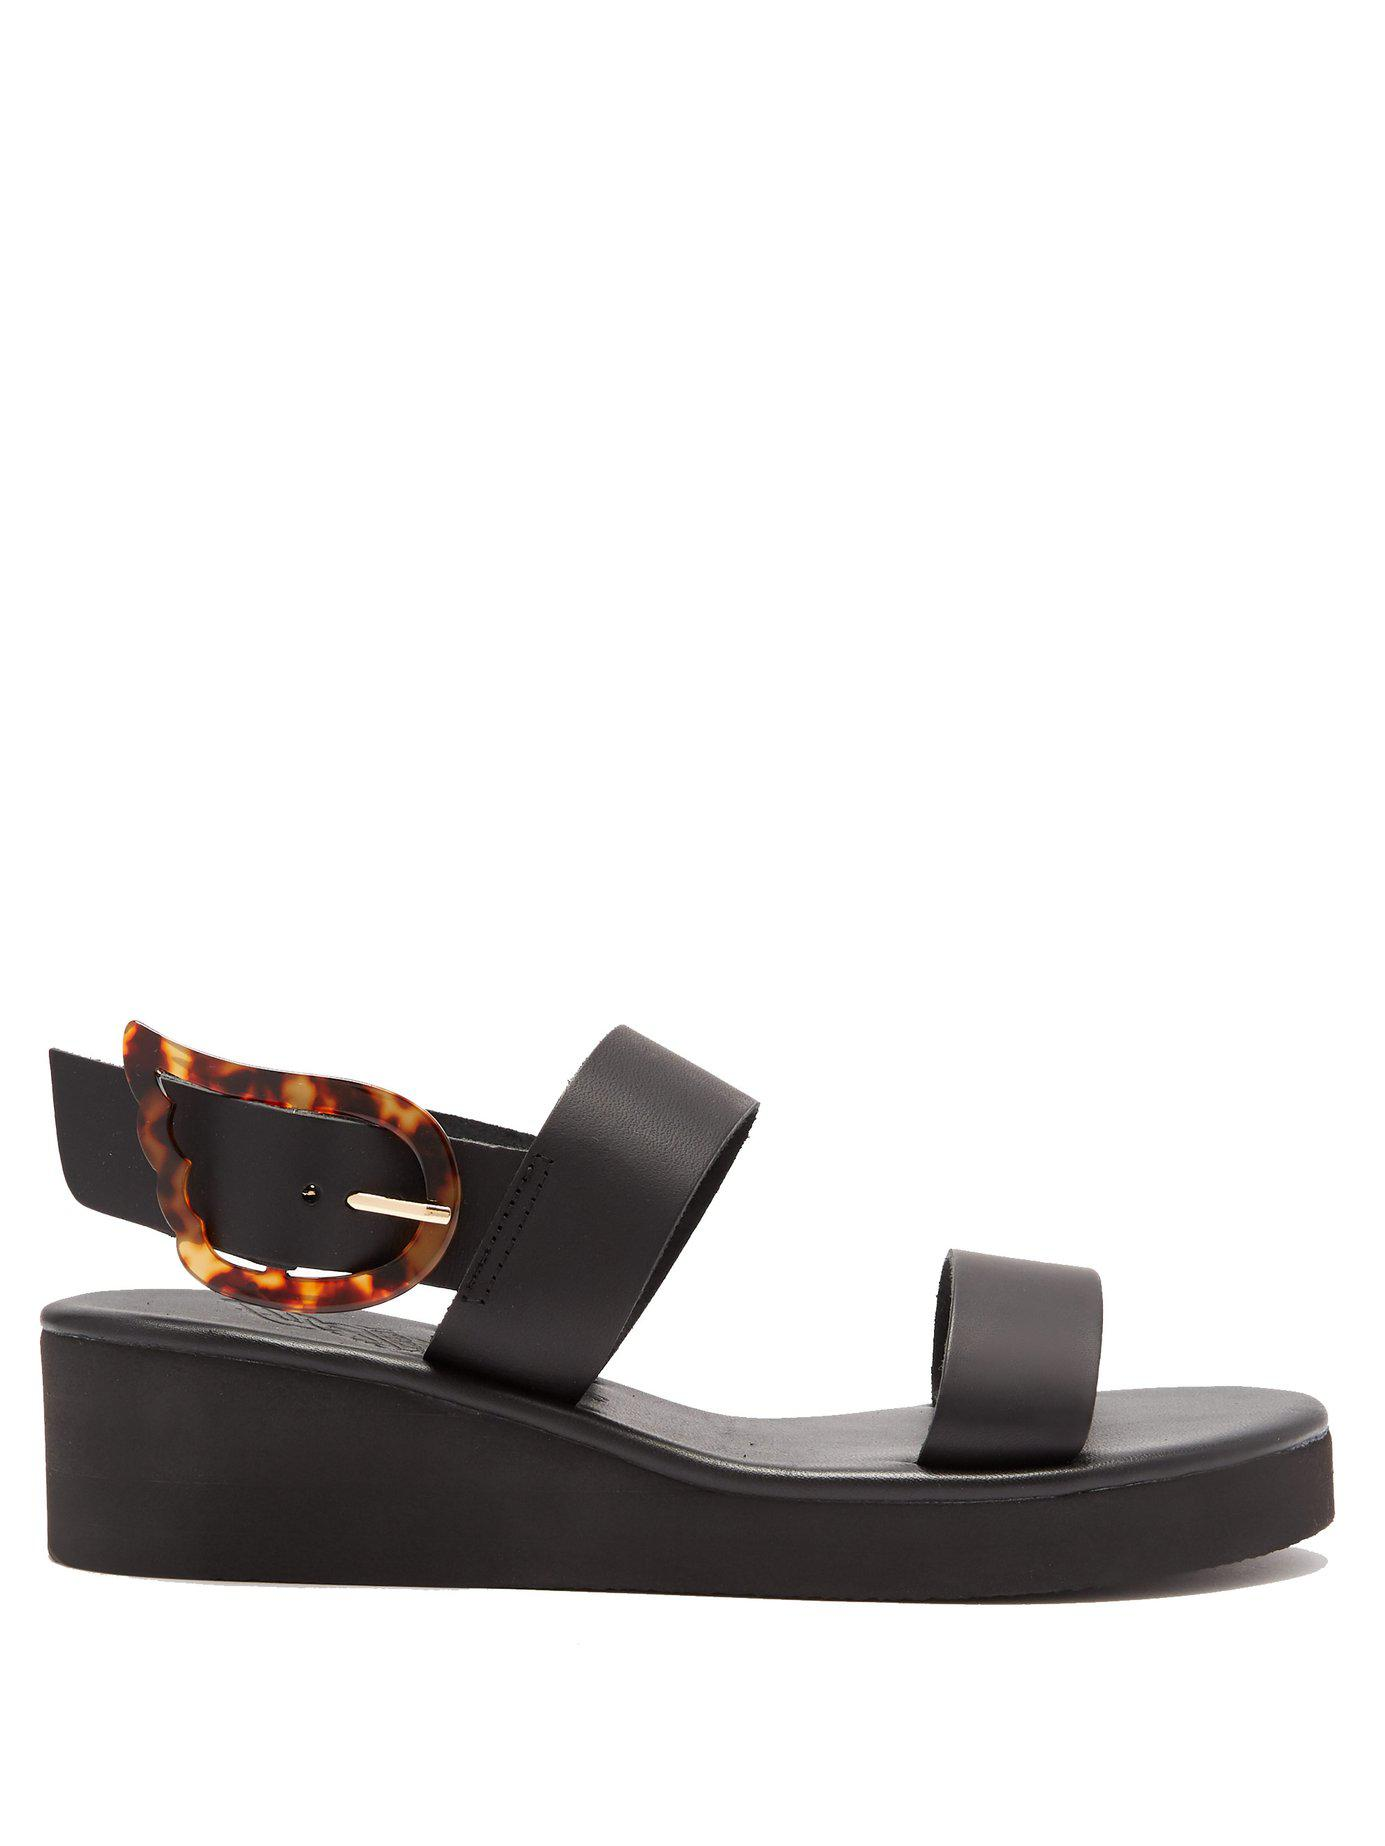 305d667e5087 Lyst - Ancient Greek Sandals Clio Rainbow Leather Wedge Sandals in Black